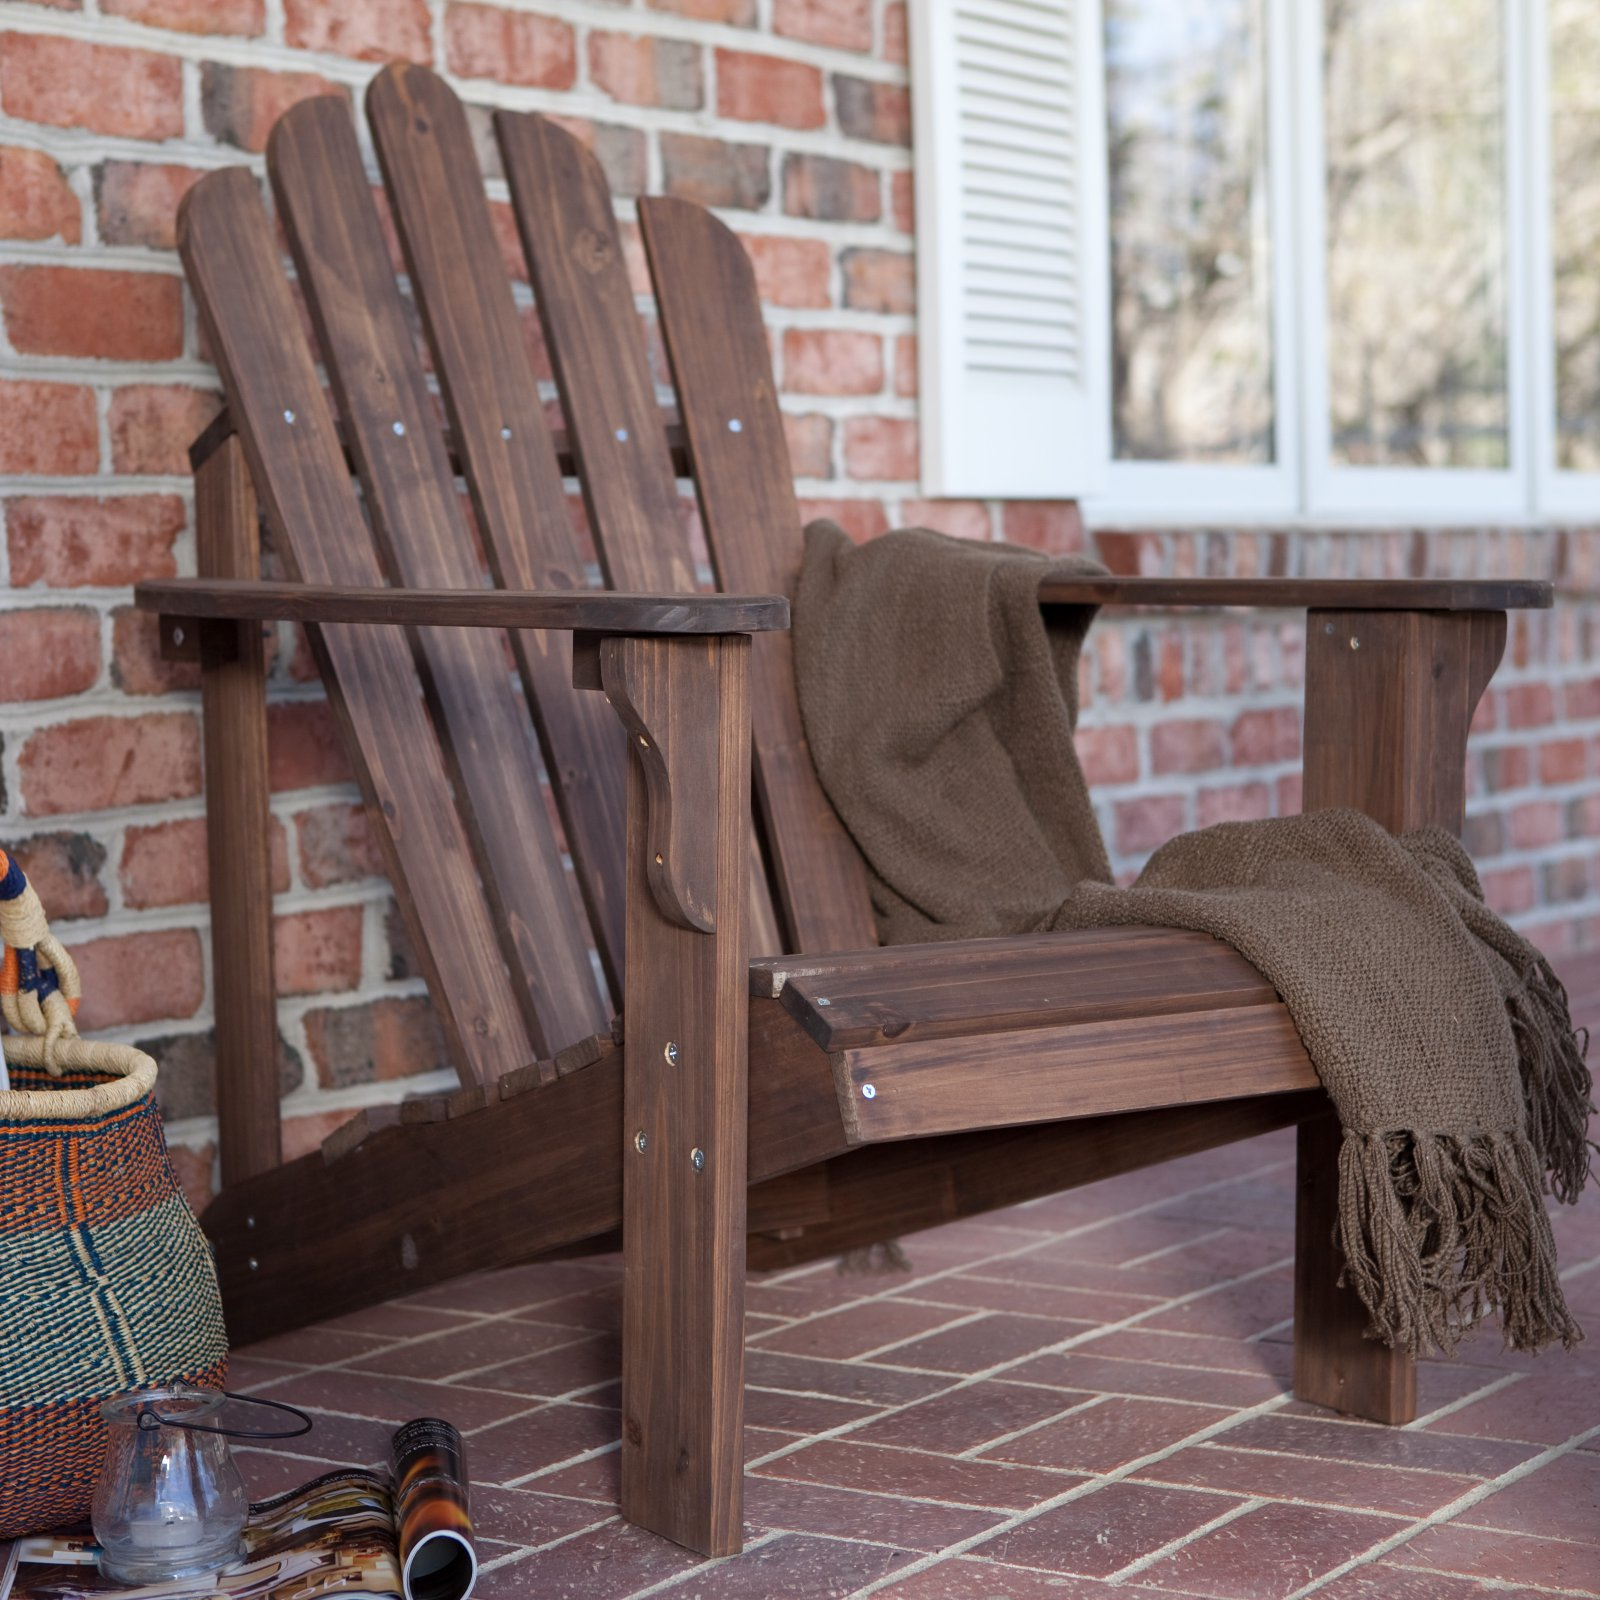 Coral Coast Hubbard Adirondack Chair Dark Brown by